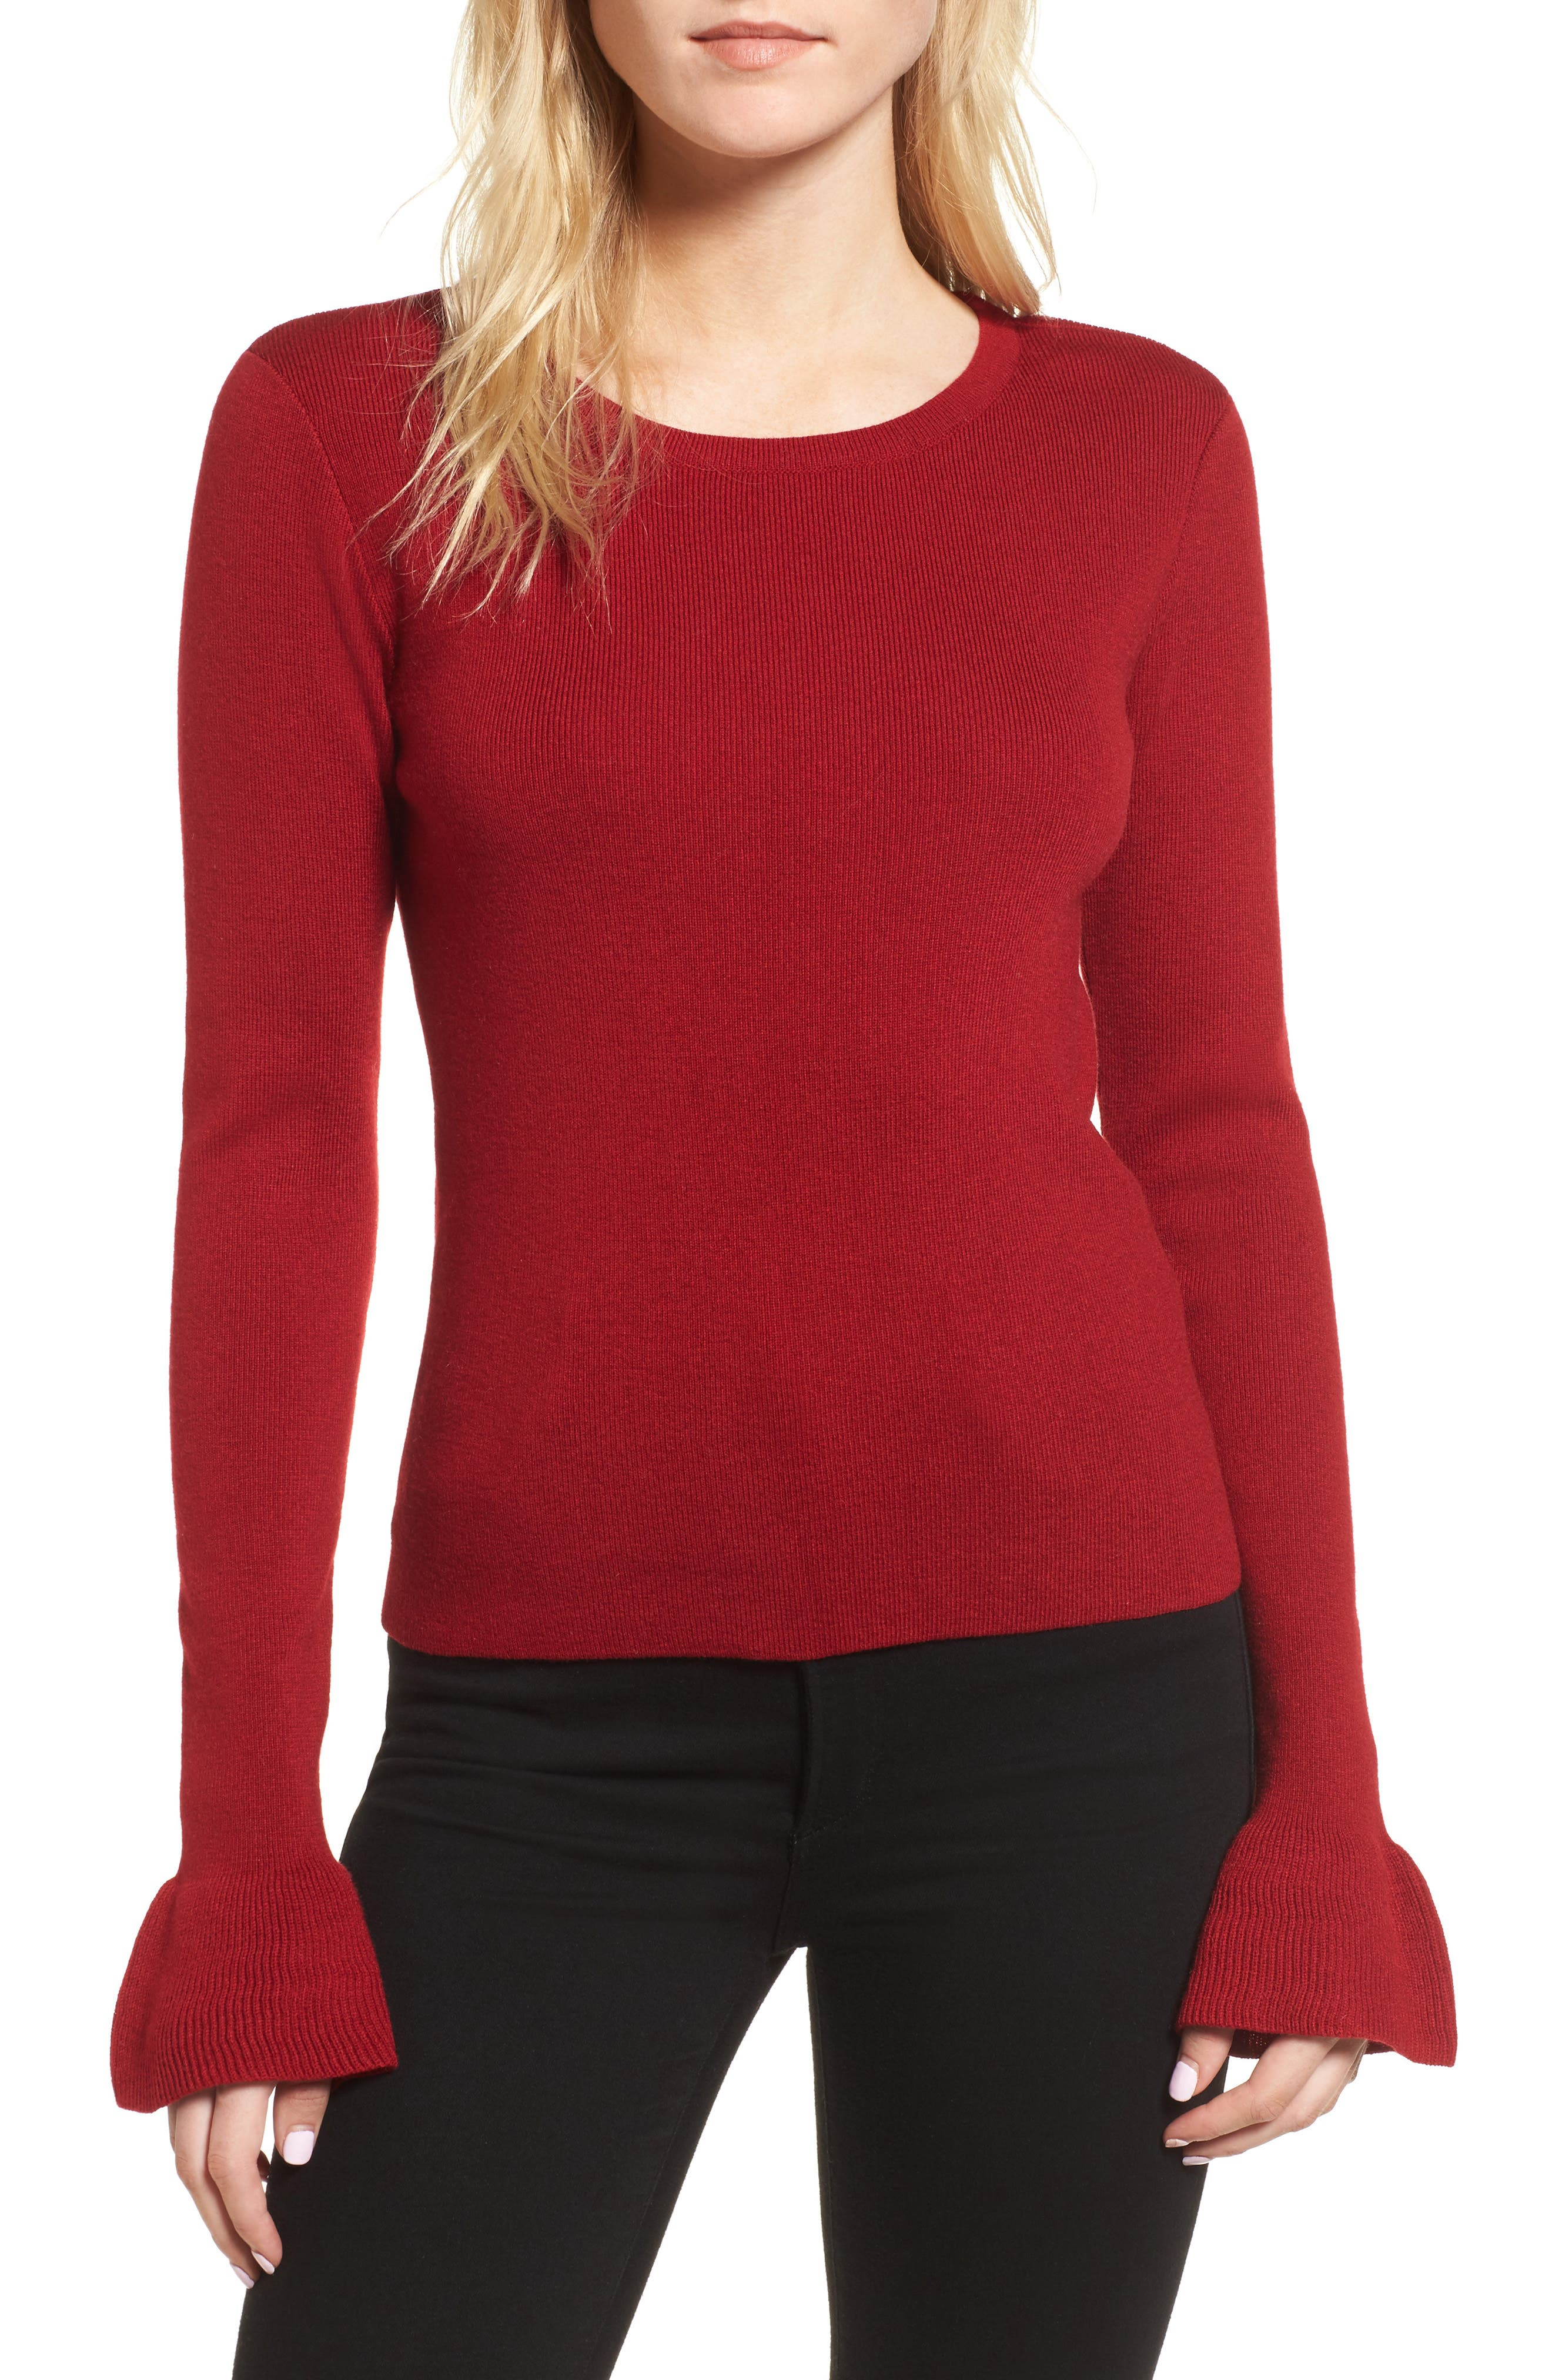 Main Image - cupcakes and cashmere Tina Ruffle Cuff Sweater